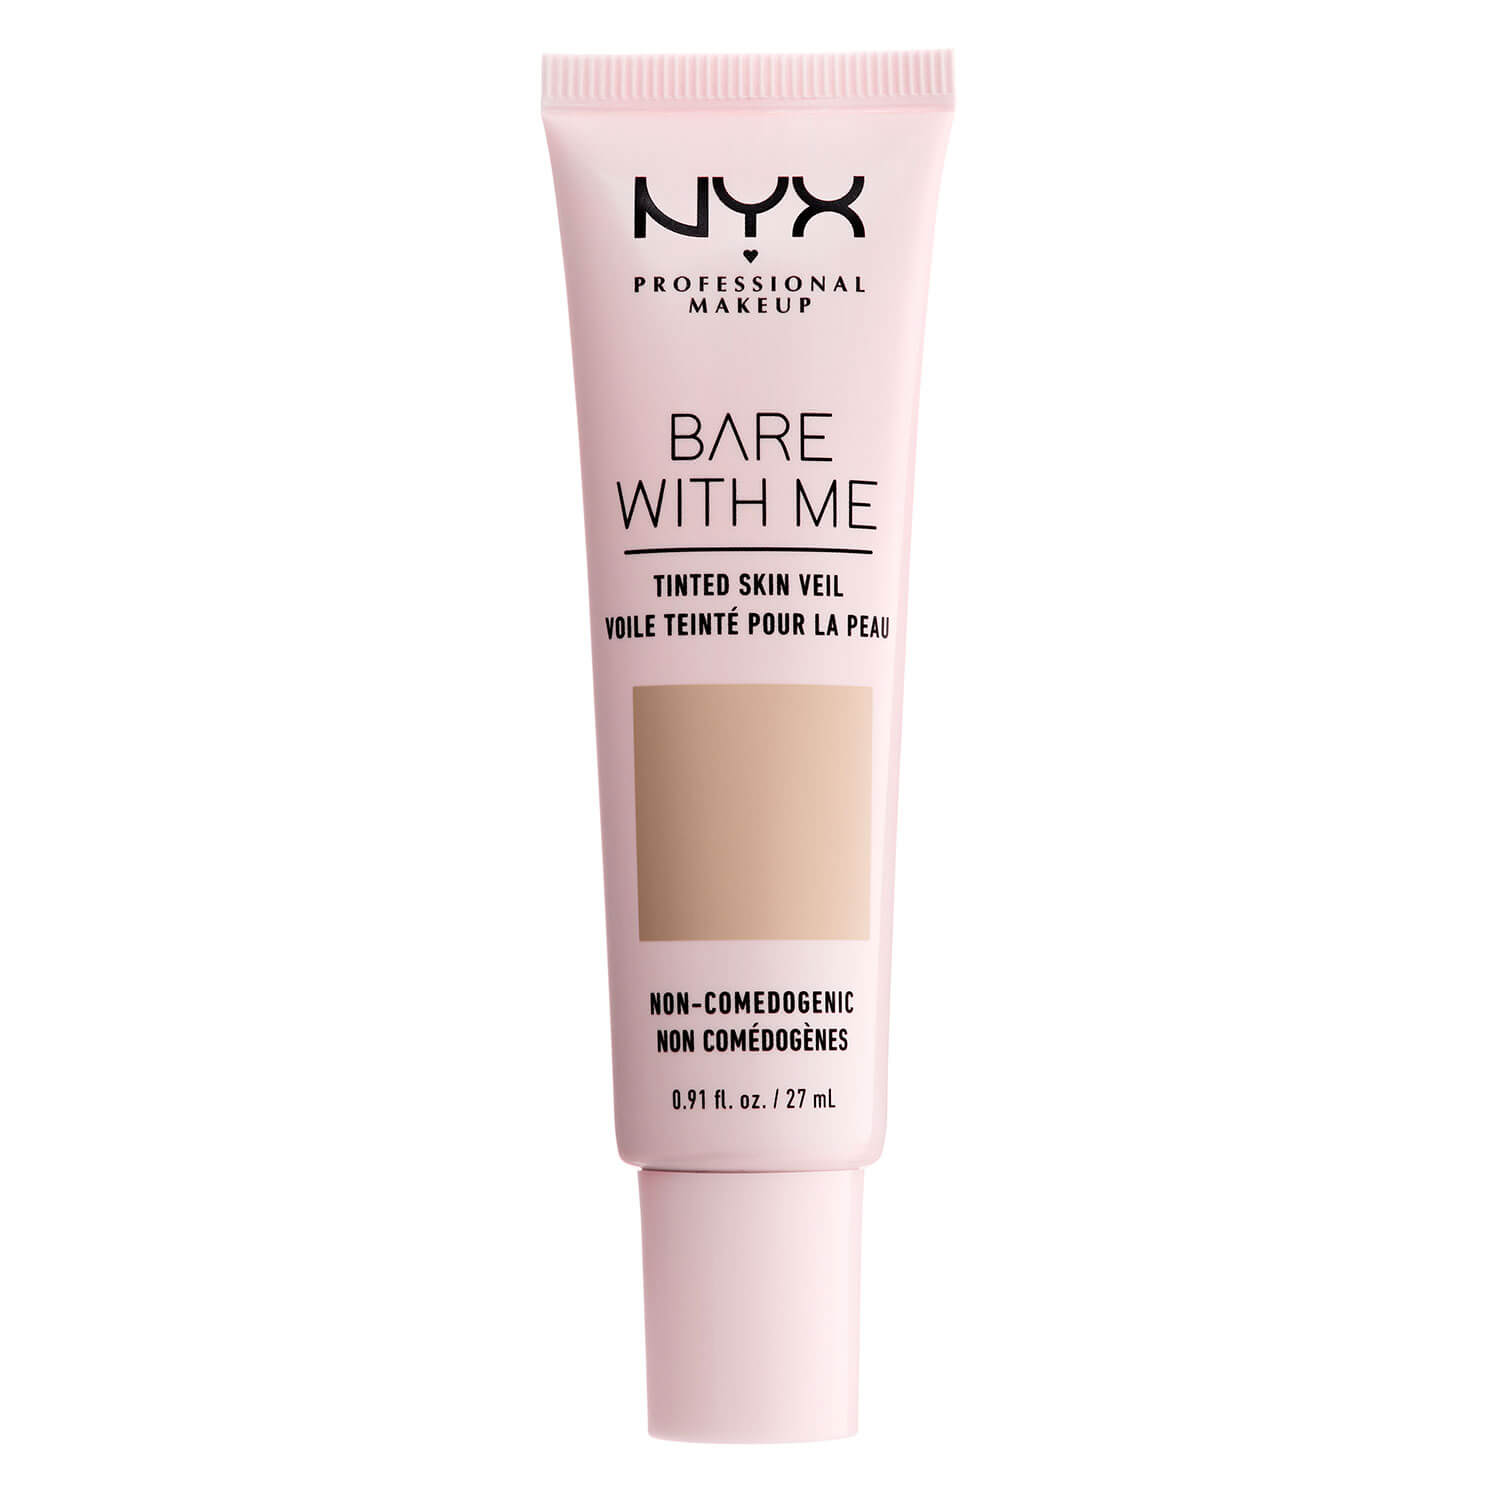 Bare with me - Tinted Skin Veil True Beige Buff